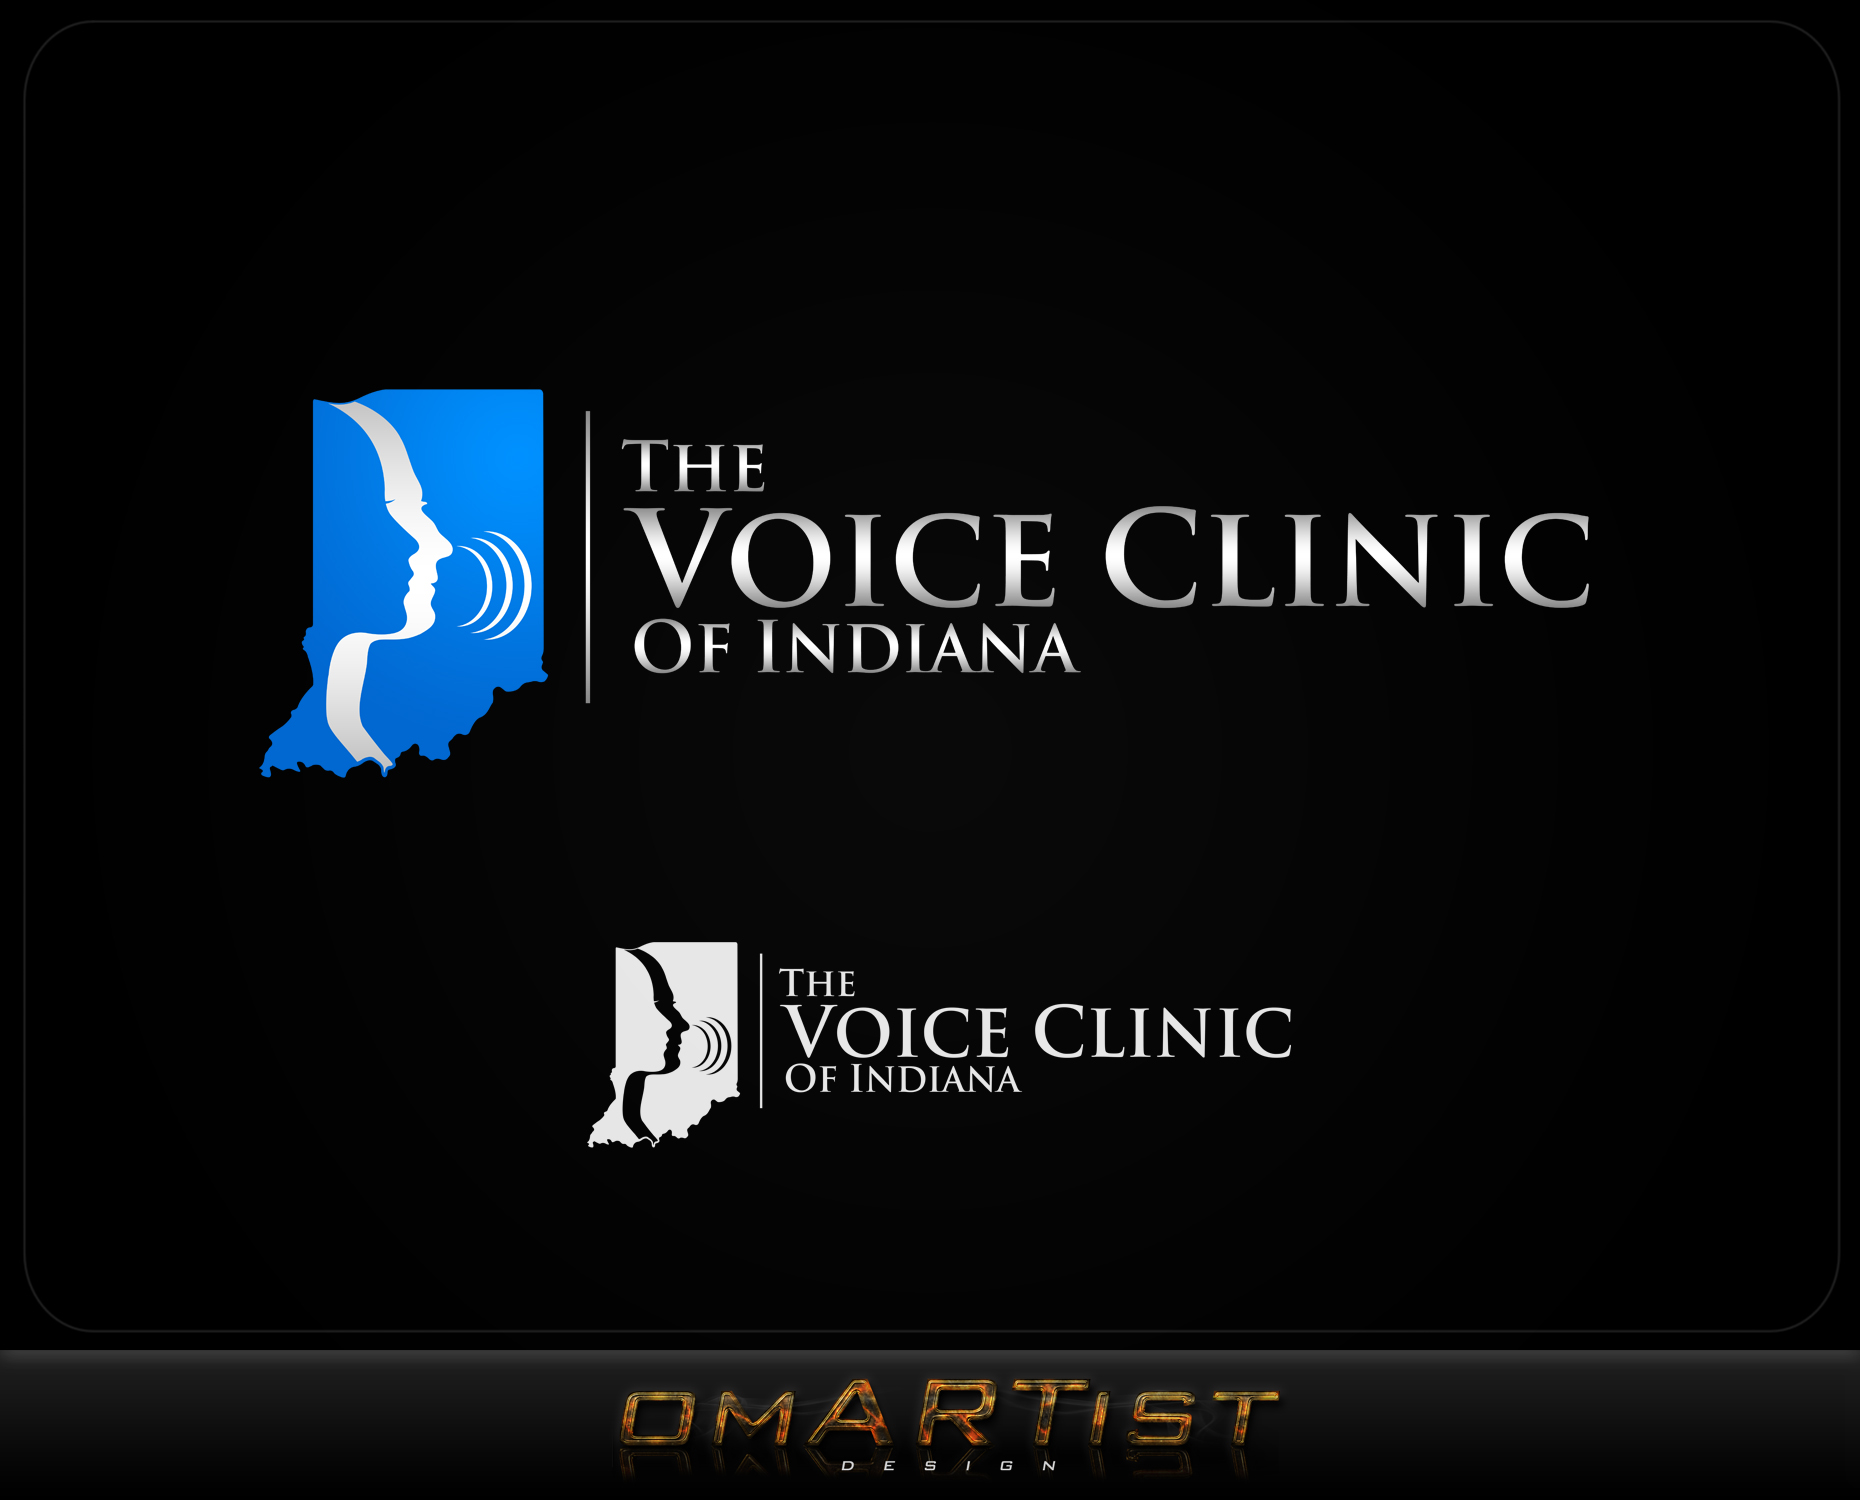 Logo Design by omARTist - Entry No. 29 in the Logo Design Contest Logo Design for The Voice Clinic of Indiana.